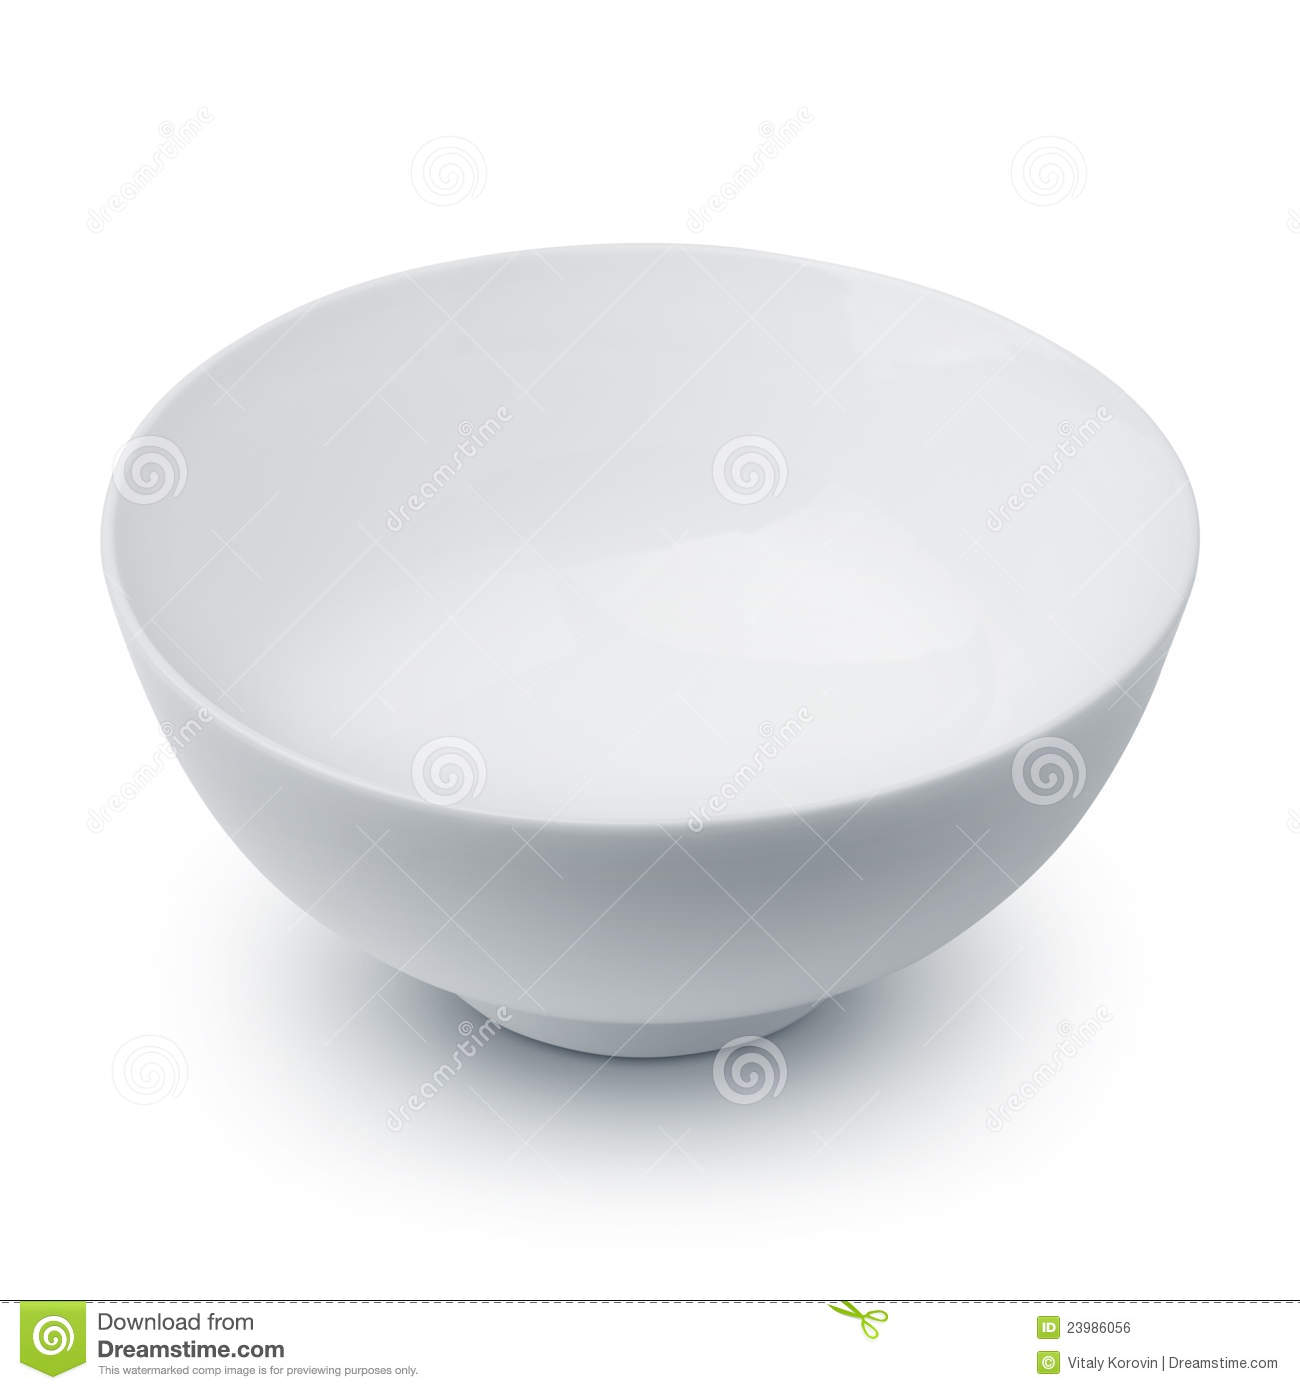 An empty white bowl